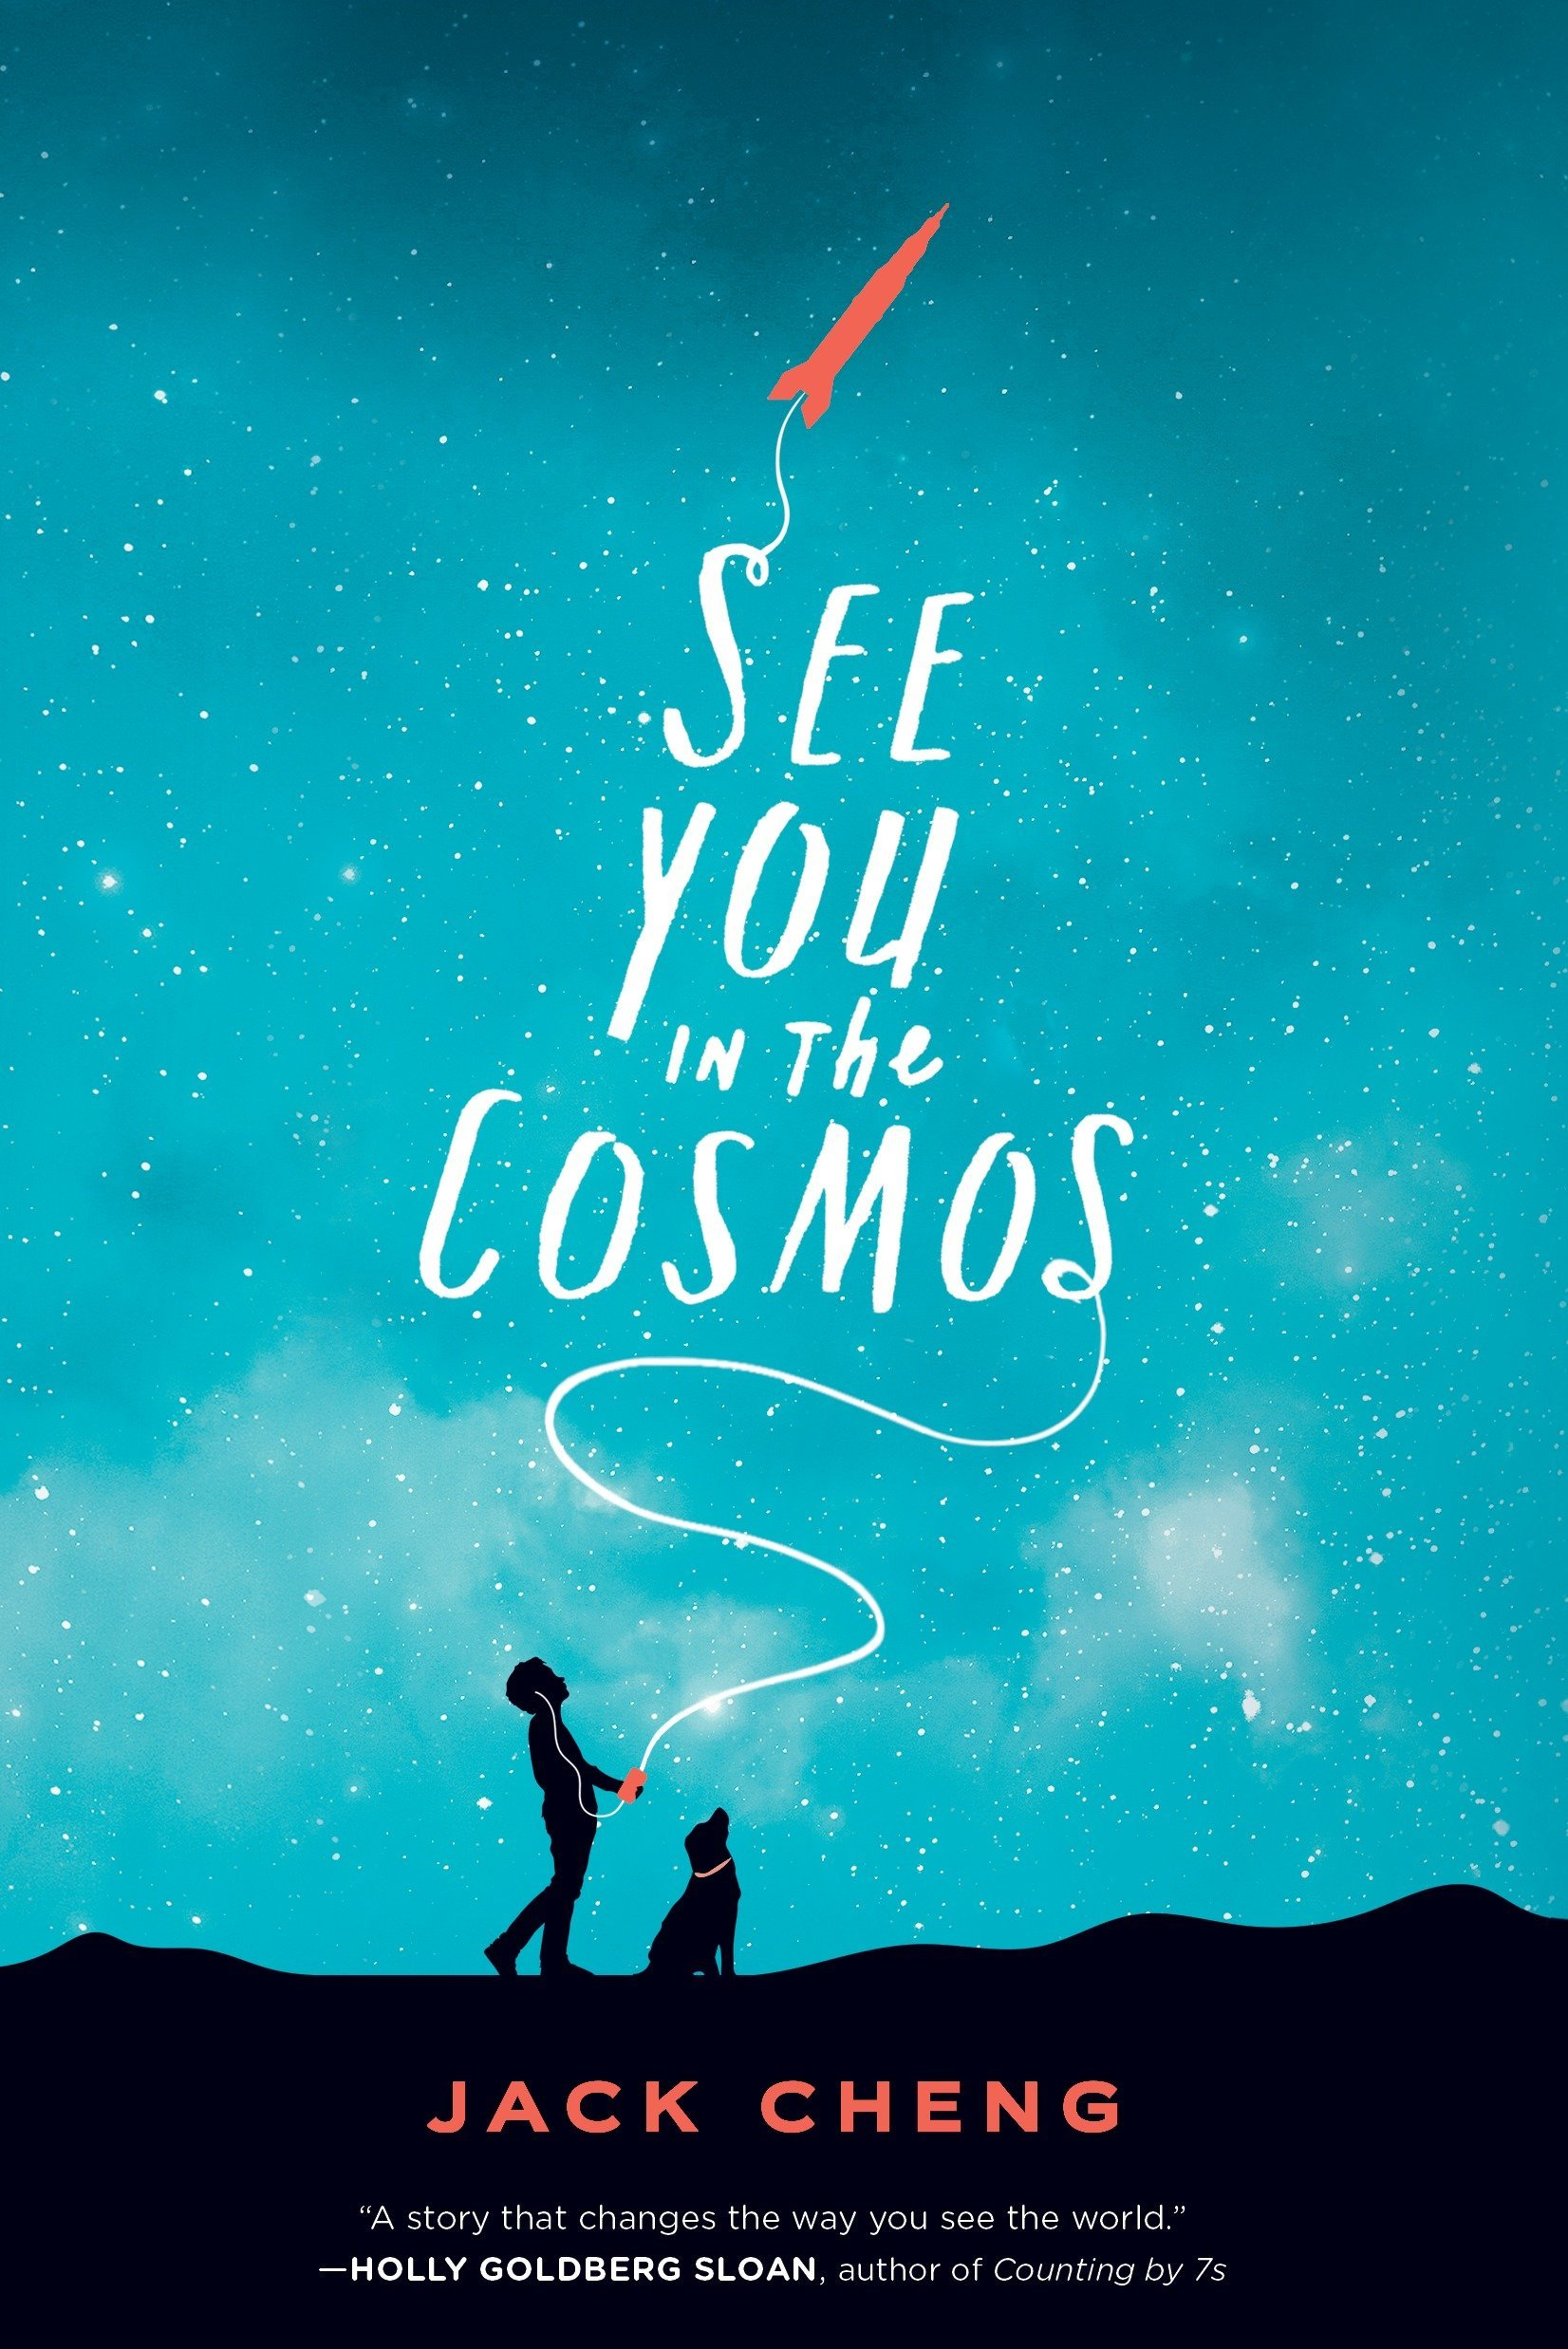 See you in the cosmos Jack Cheng